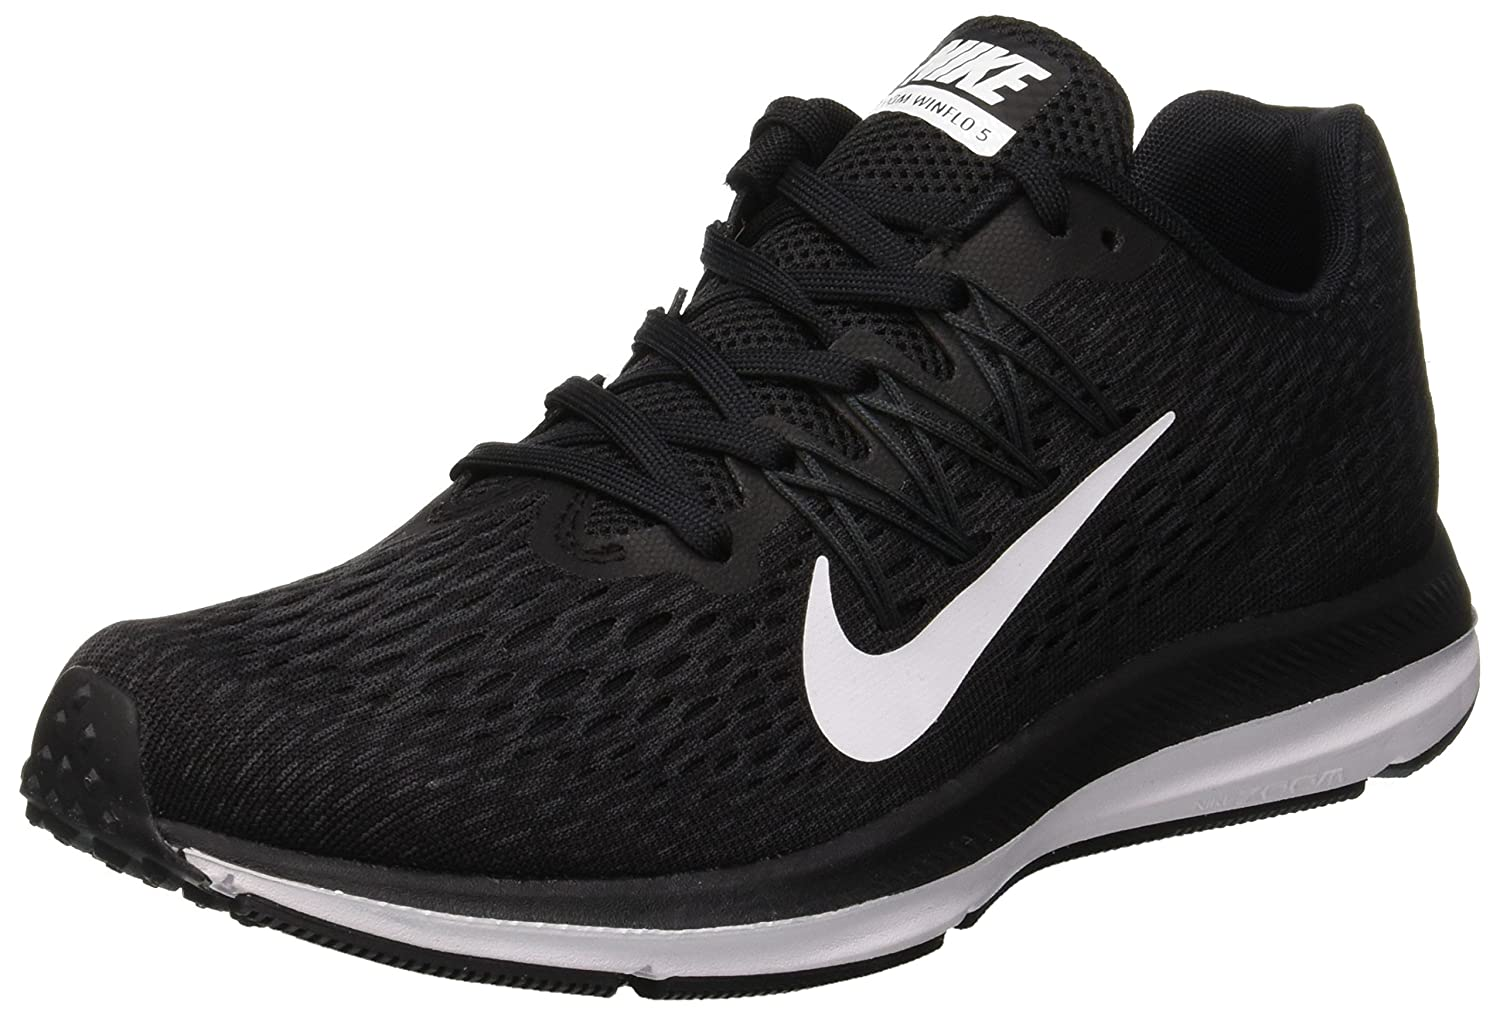 f4a5f84f89861 NIKE Women s Zoom Winflo 5 Running Shoes  Amazon.co.uk  Shoes   Bags